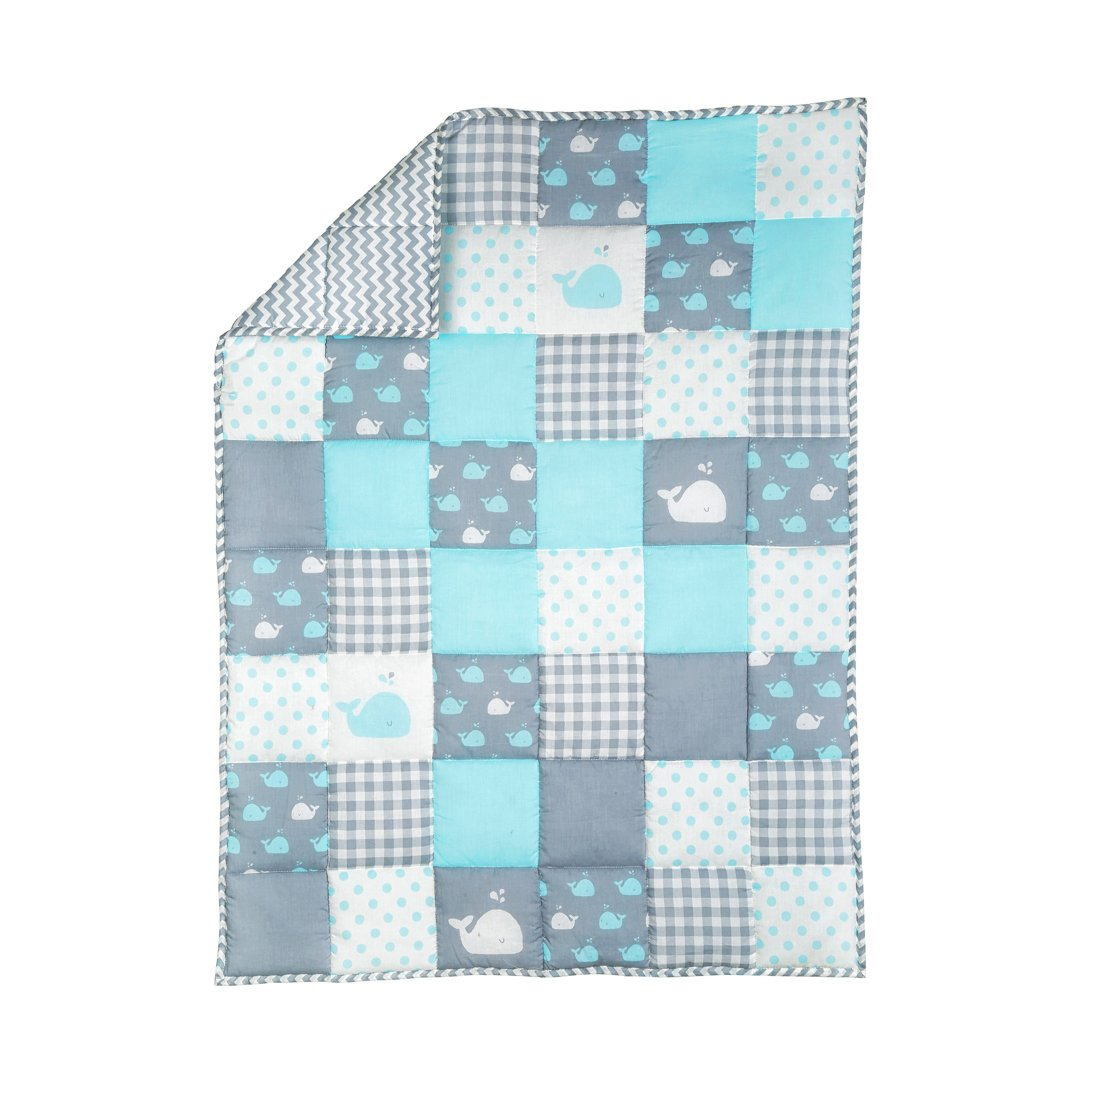 Plush Blue Toddler Blanket - Soft Cot Comforter for Boys and Girls Pure Cotton Baby Cradle Quilt Rajrang BQT00004